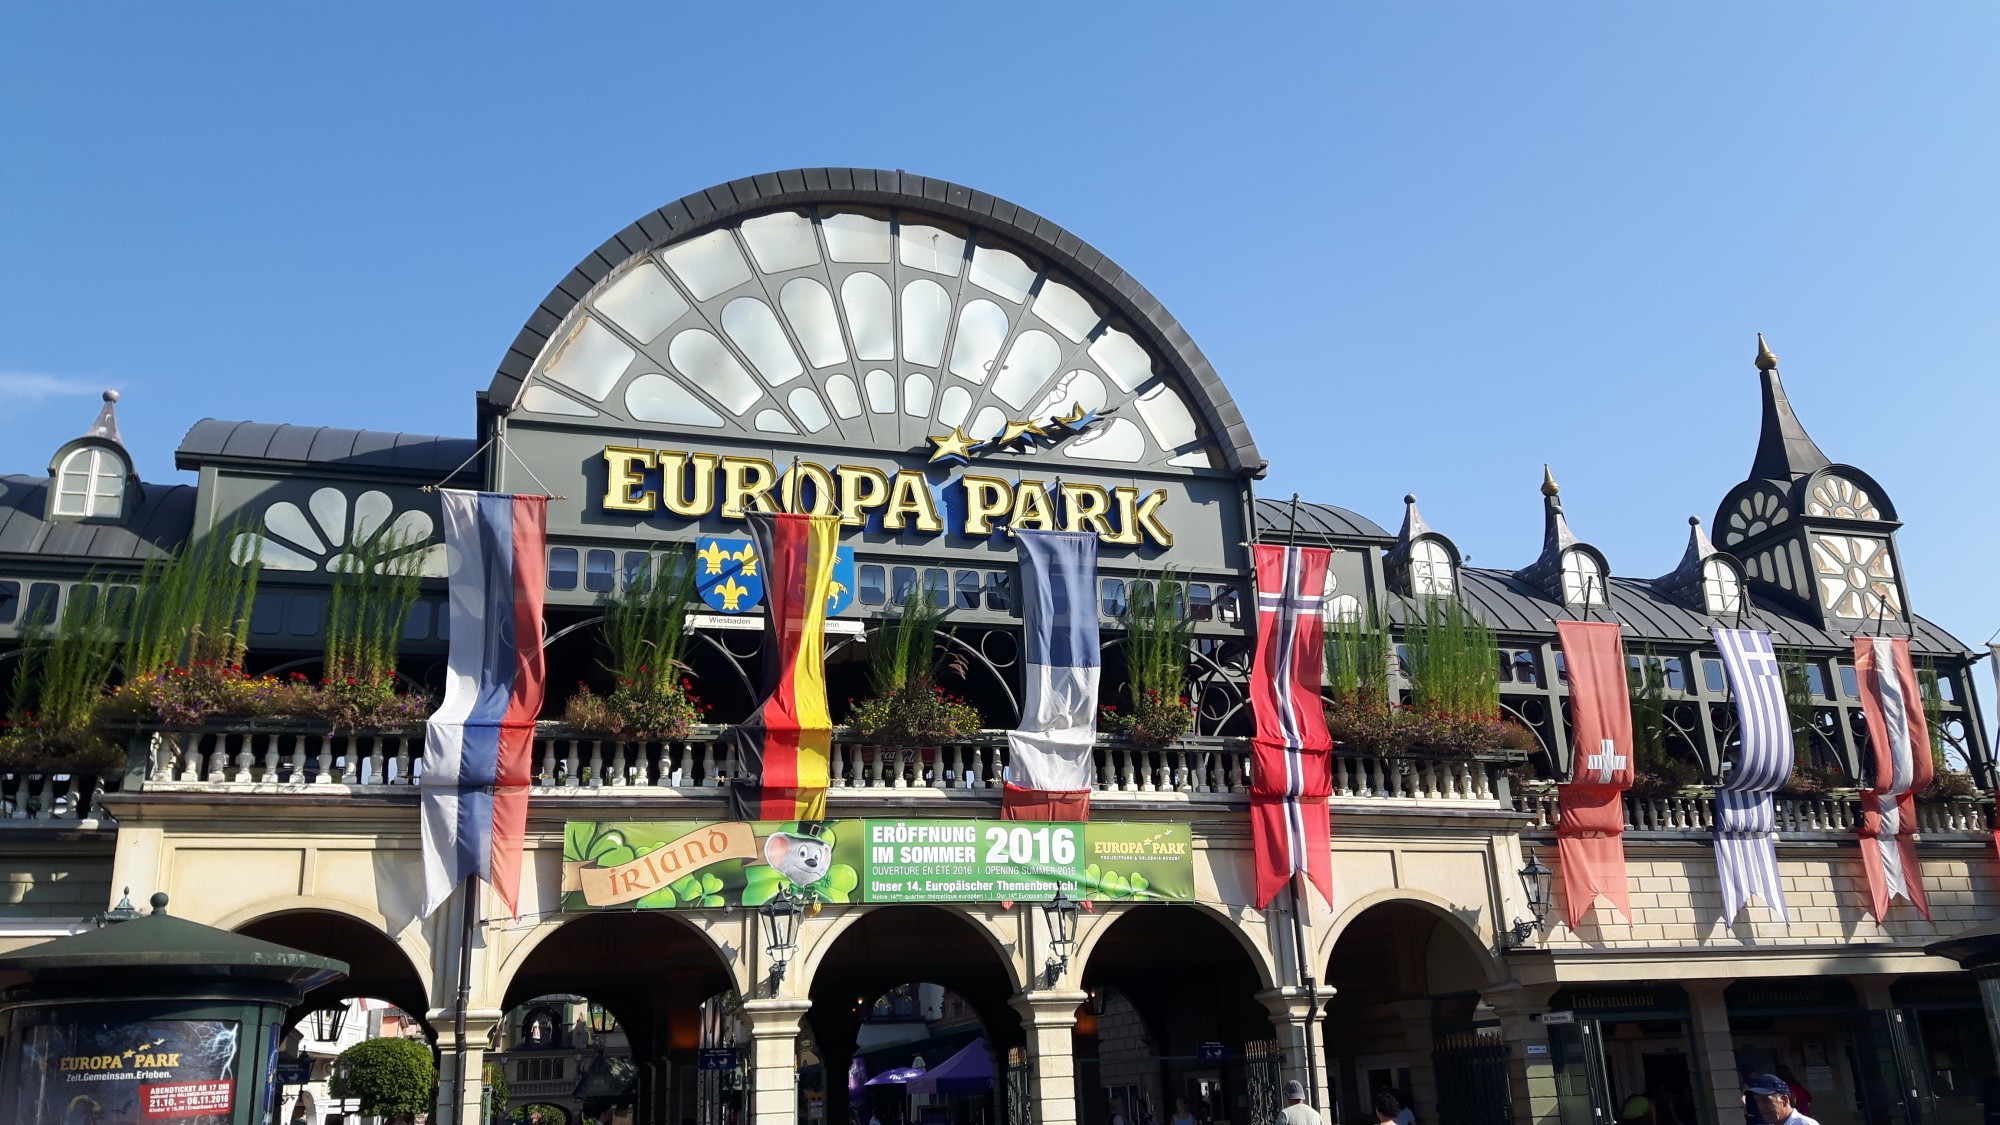 Week–end à Europa Park (plus grand parc d'attraction d'Europe après Disneyland) du 9 au 12 Août 2018